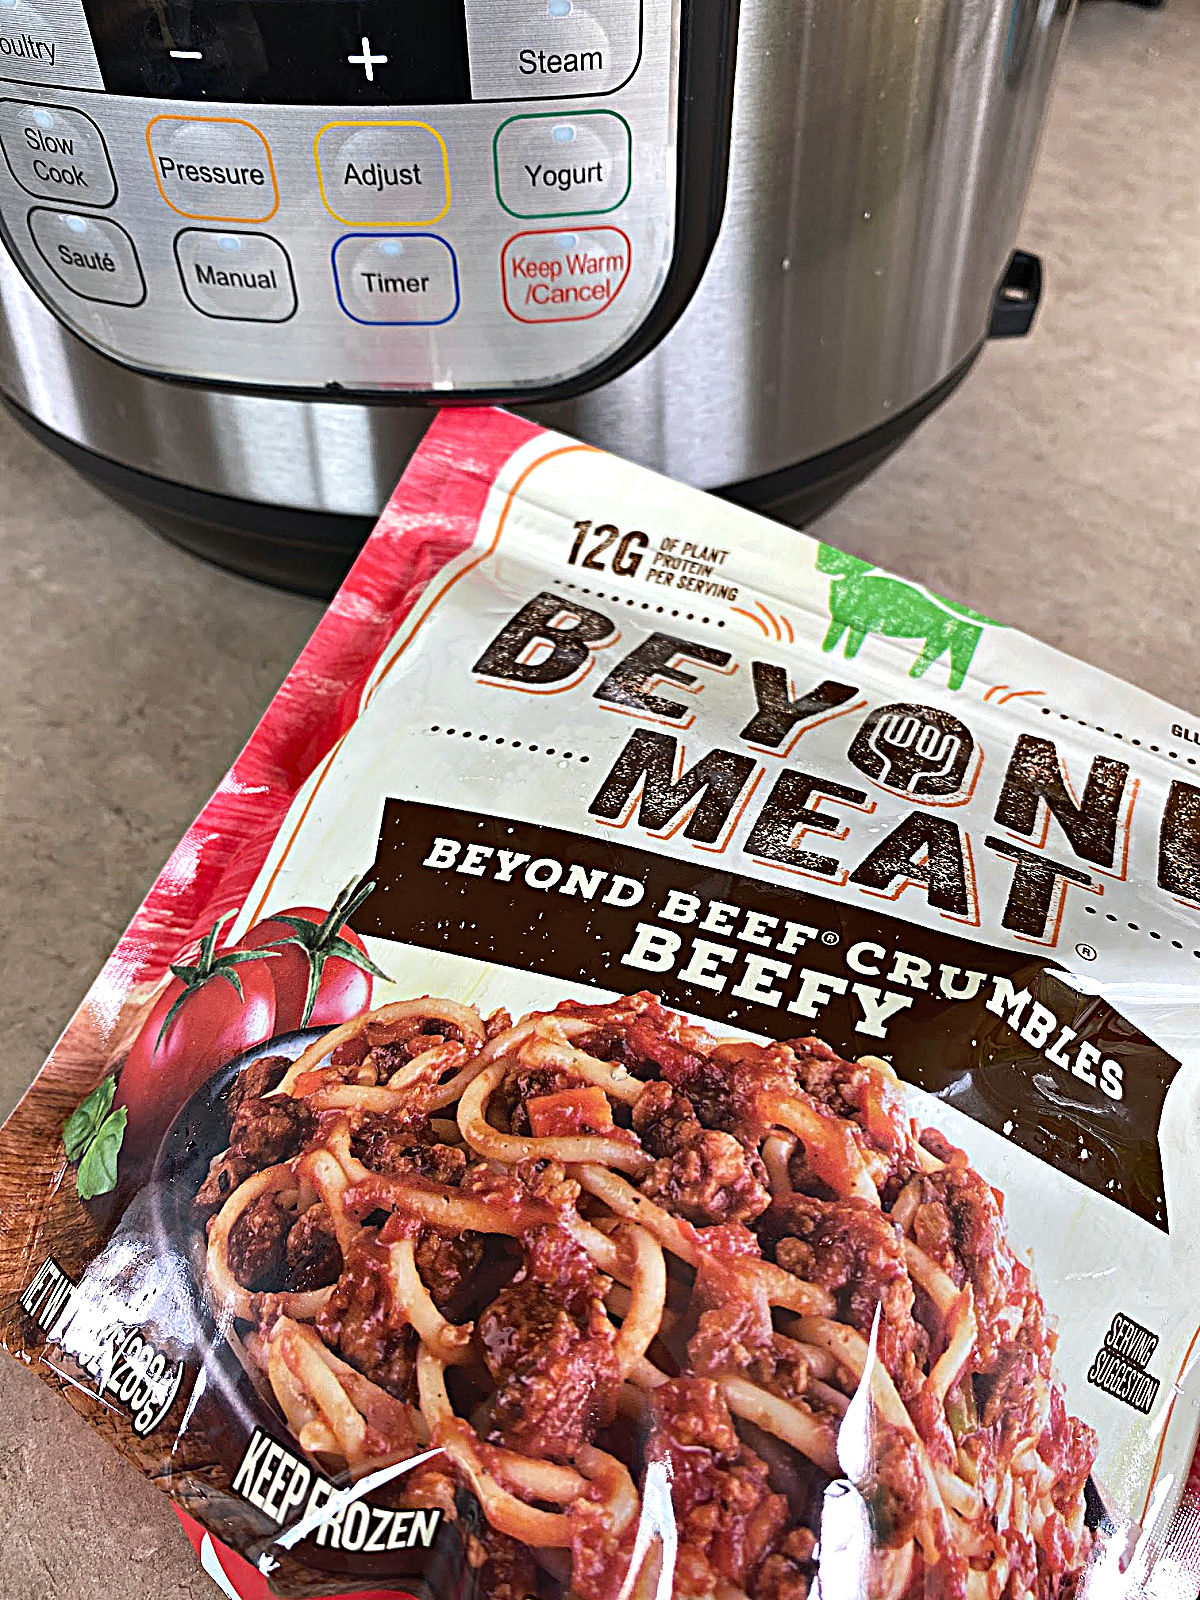 Package of frozen Beyond Meat brand Beefy crumbles with an Instant Pot in the background